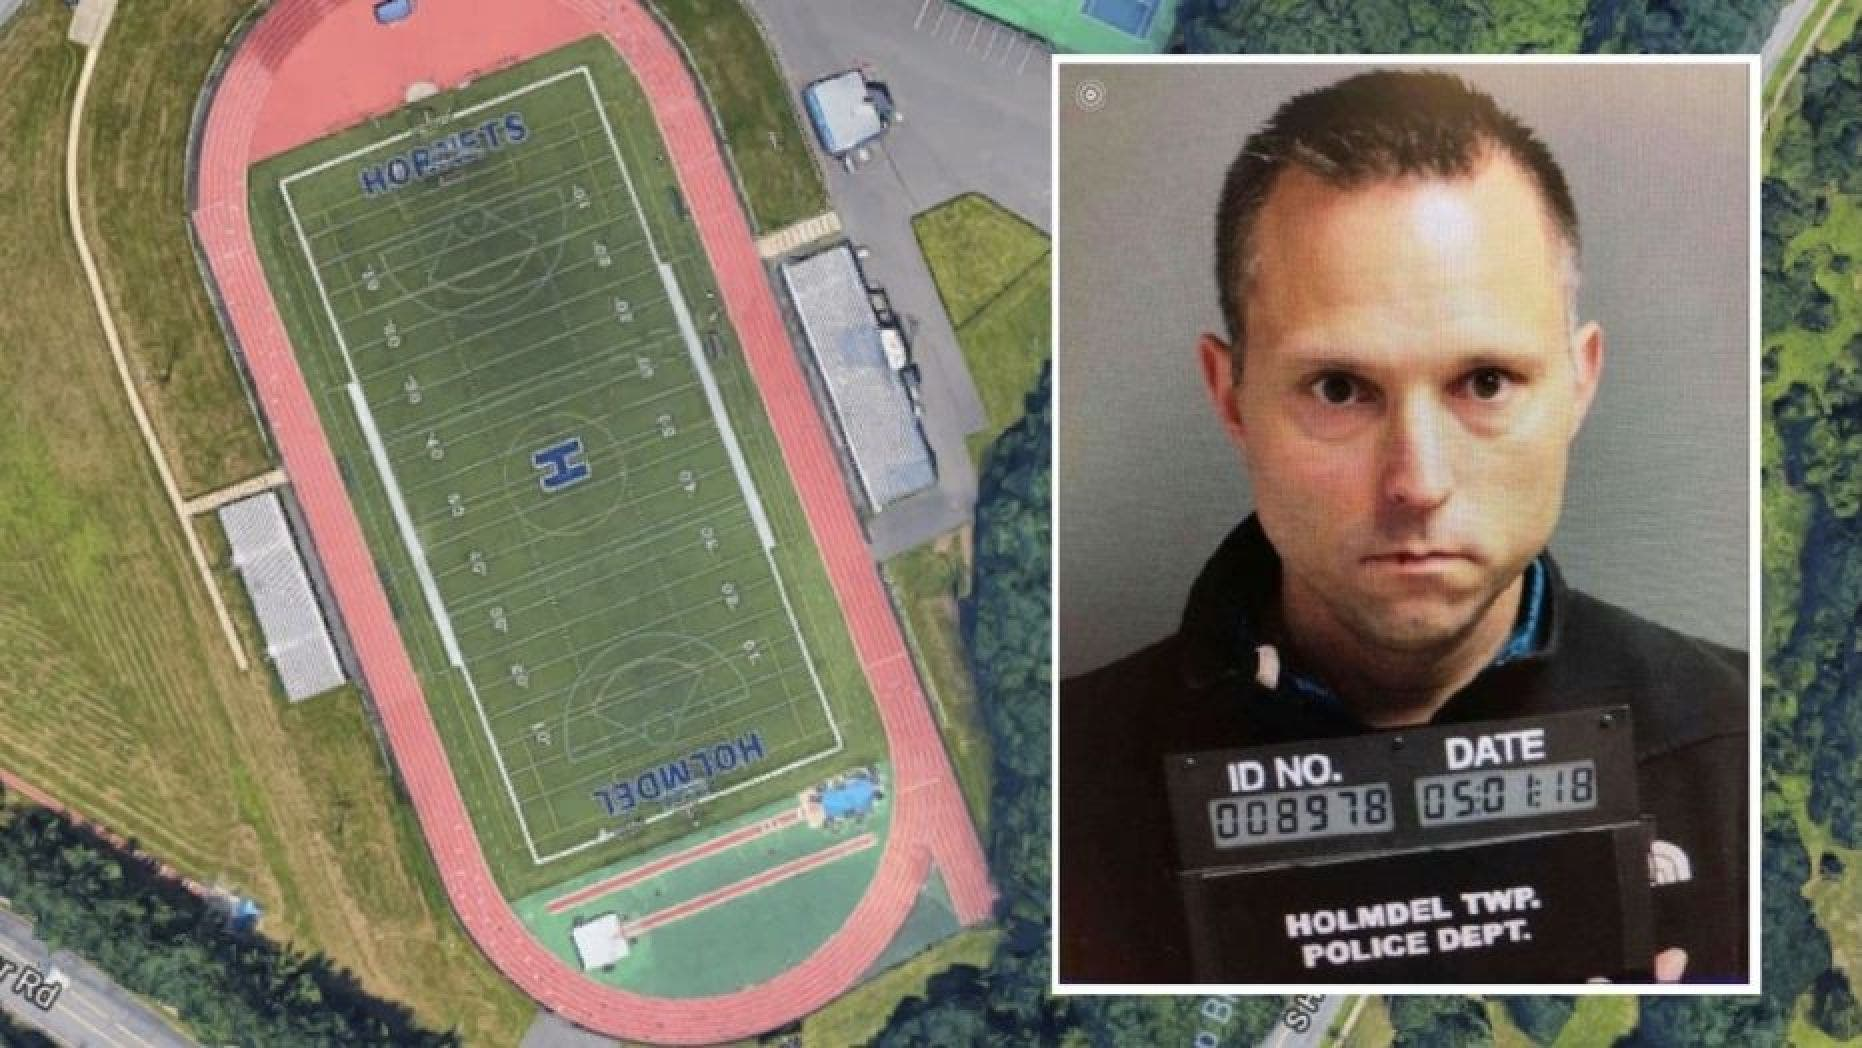 Former New Jersey schools superintendent Thomas Tramaglini, 42, pleaded guilty on Wednesday to defecating in public. He was caught pooping near a high school athletic field.